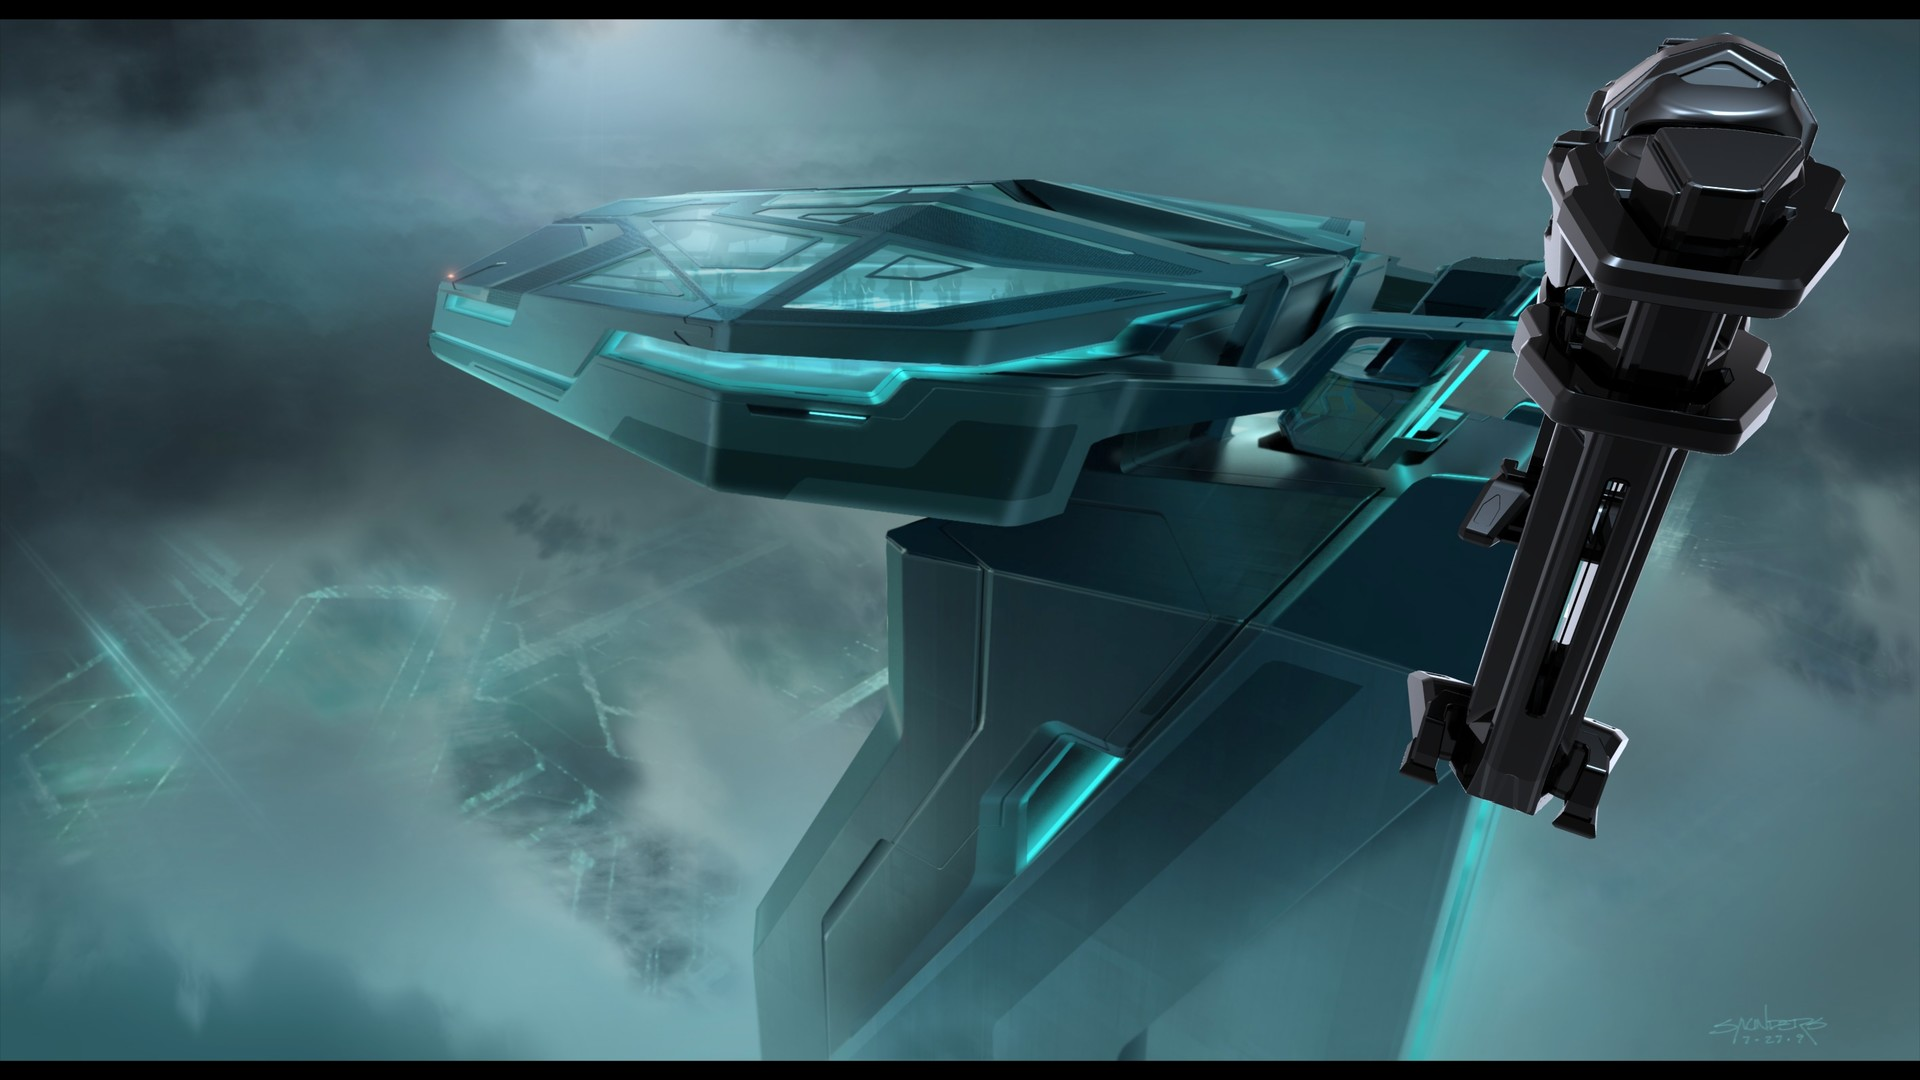 Keyframe of Clu's Recognizer docked at the End of Line Club.